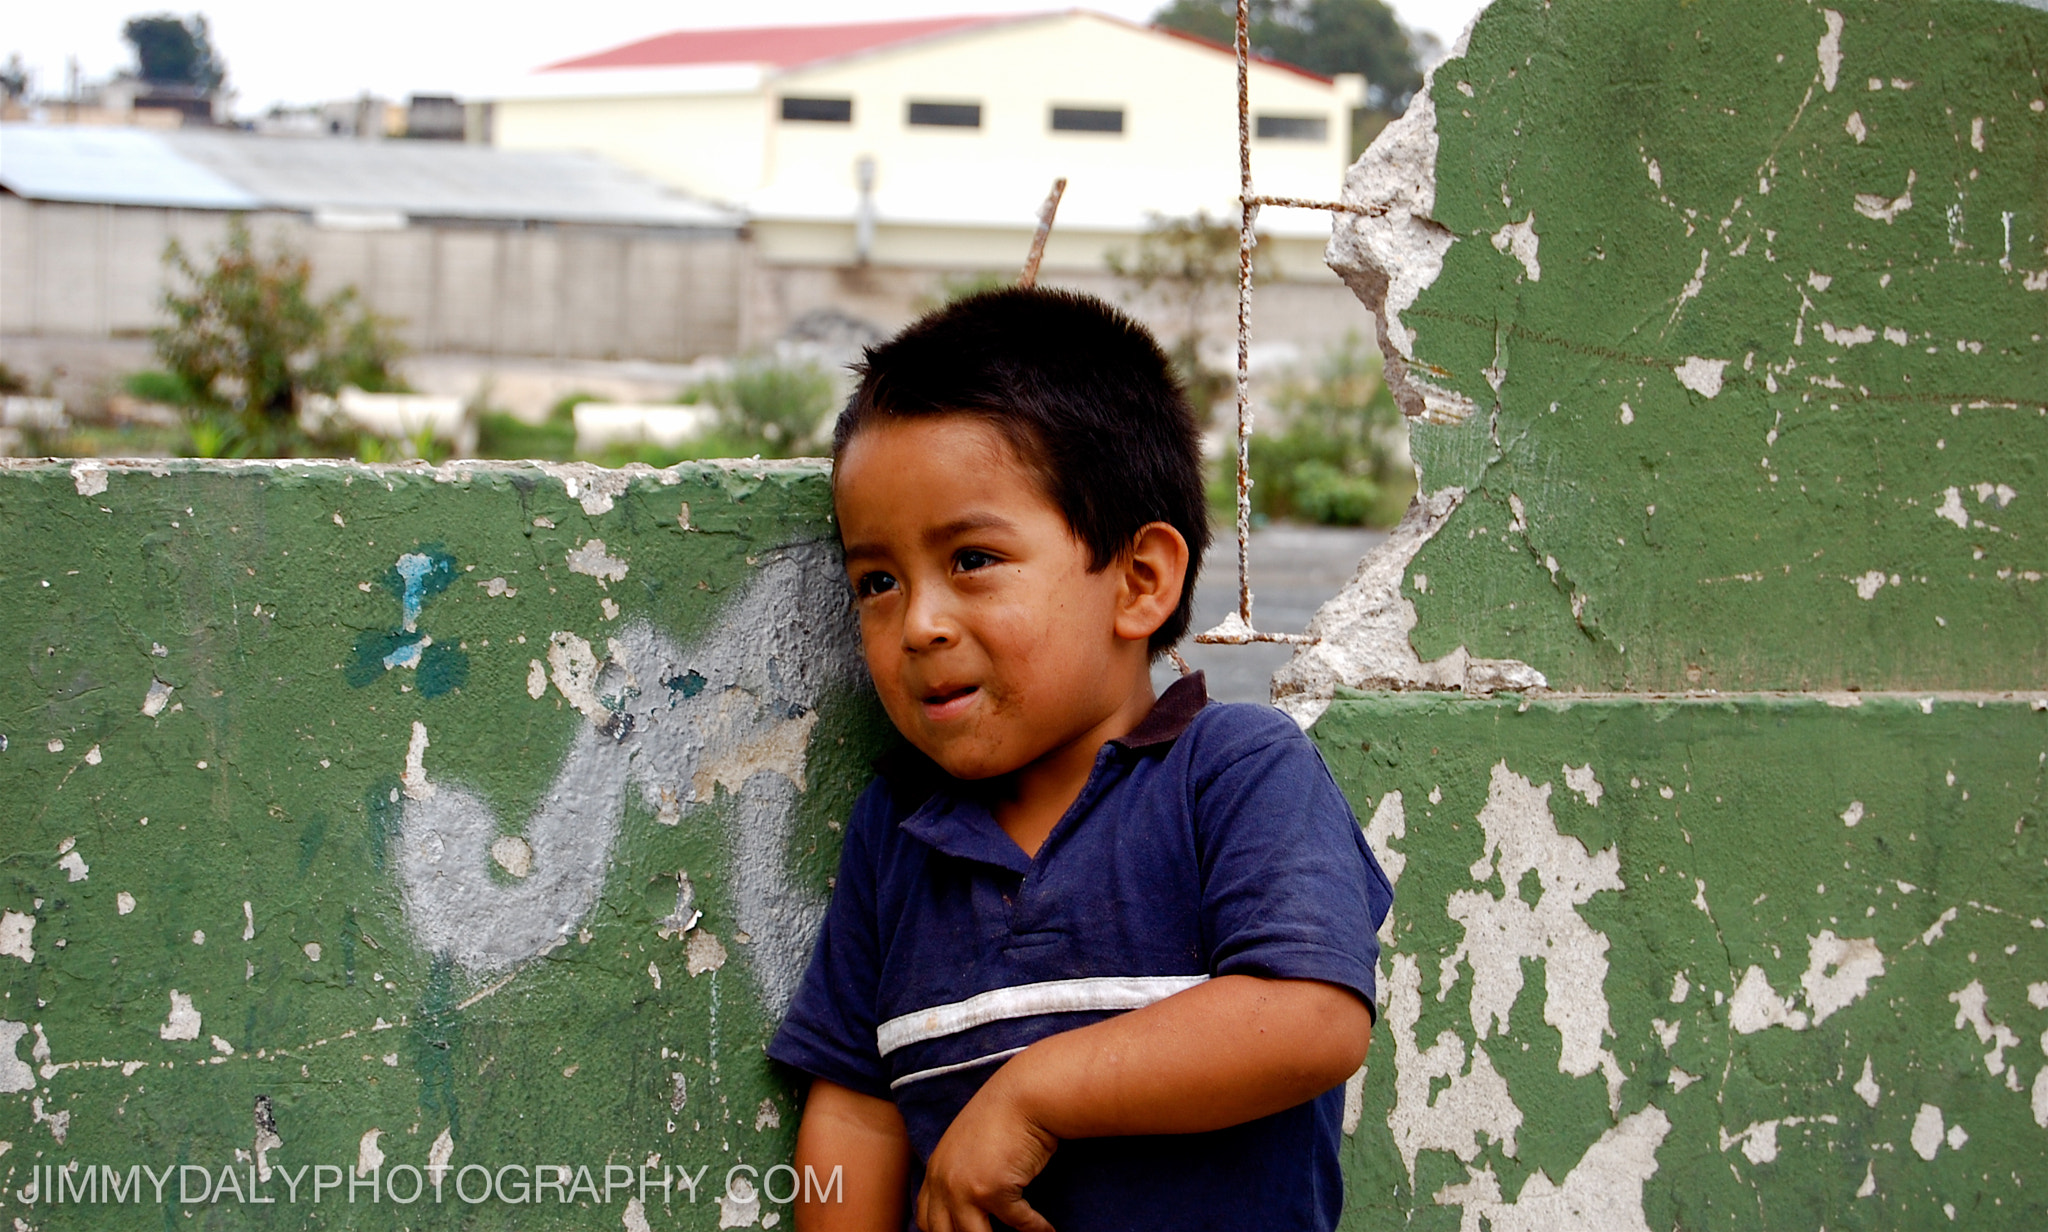 Photograph Child in the Guatemala City Dump by Jimmy Daly on 500px